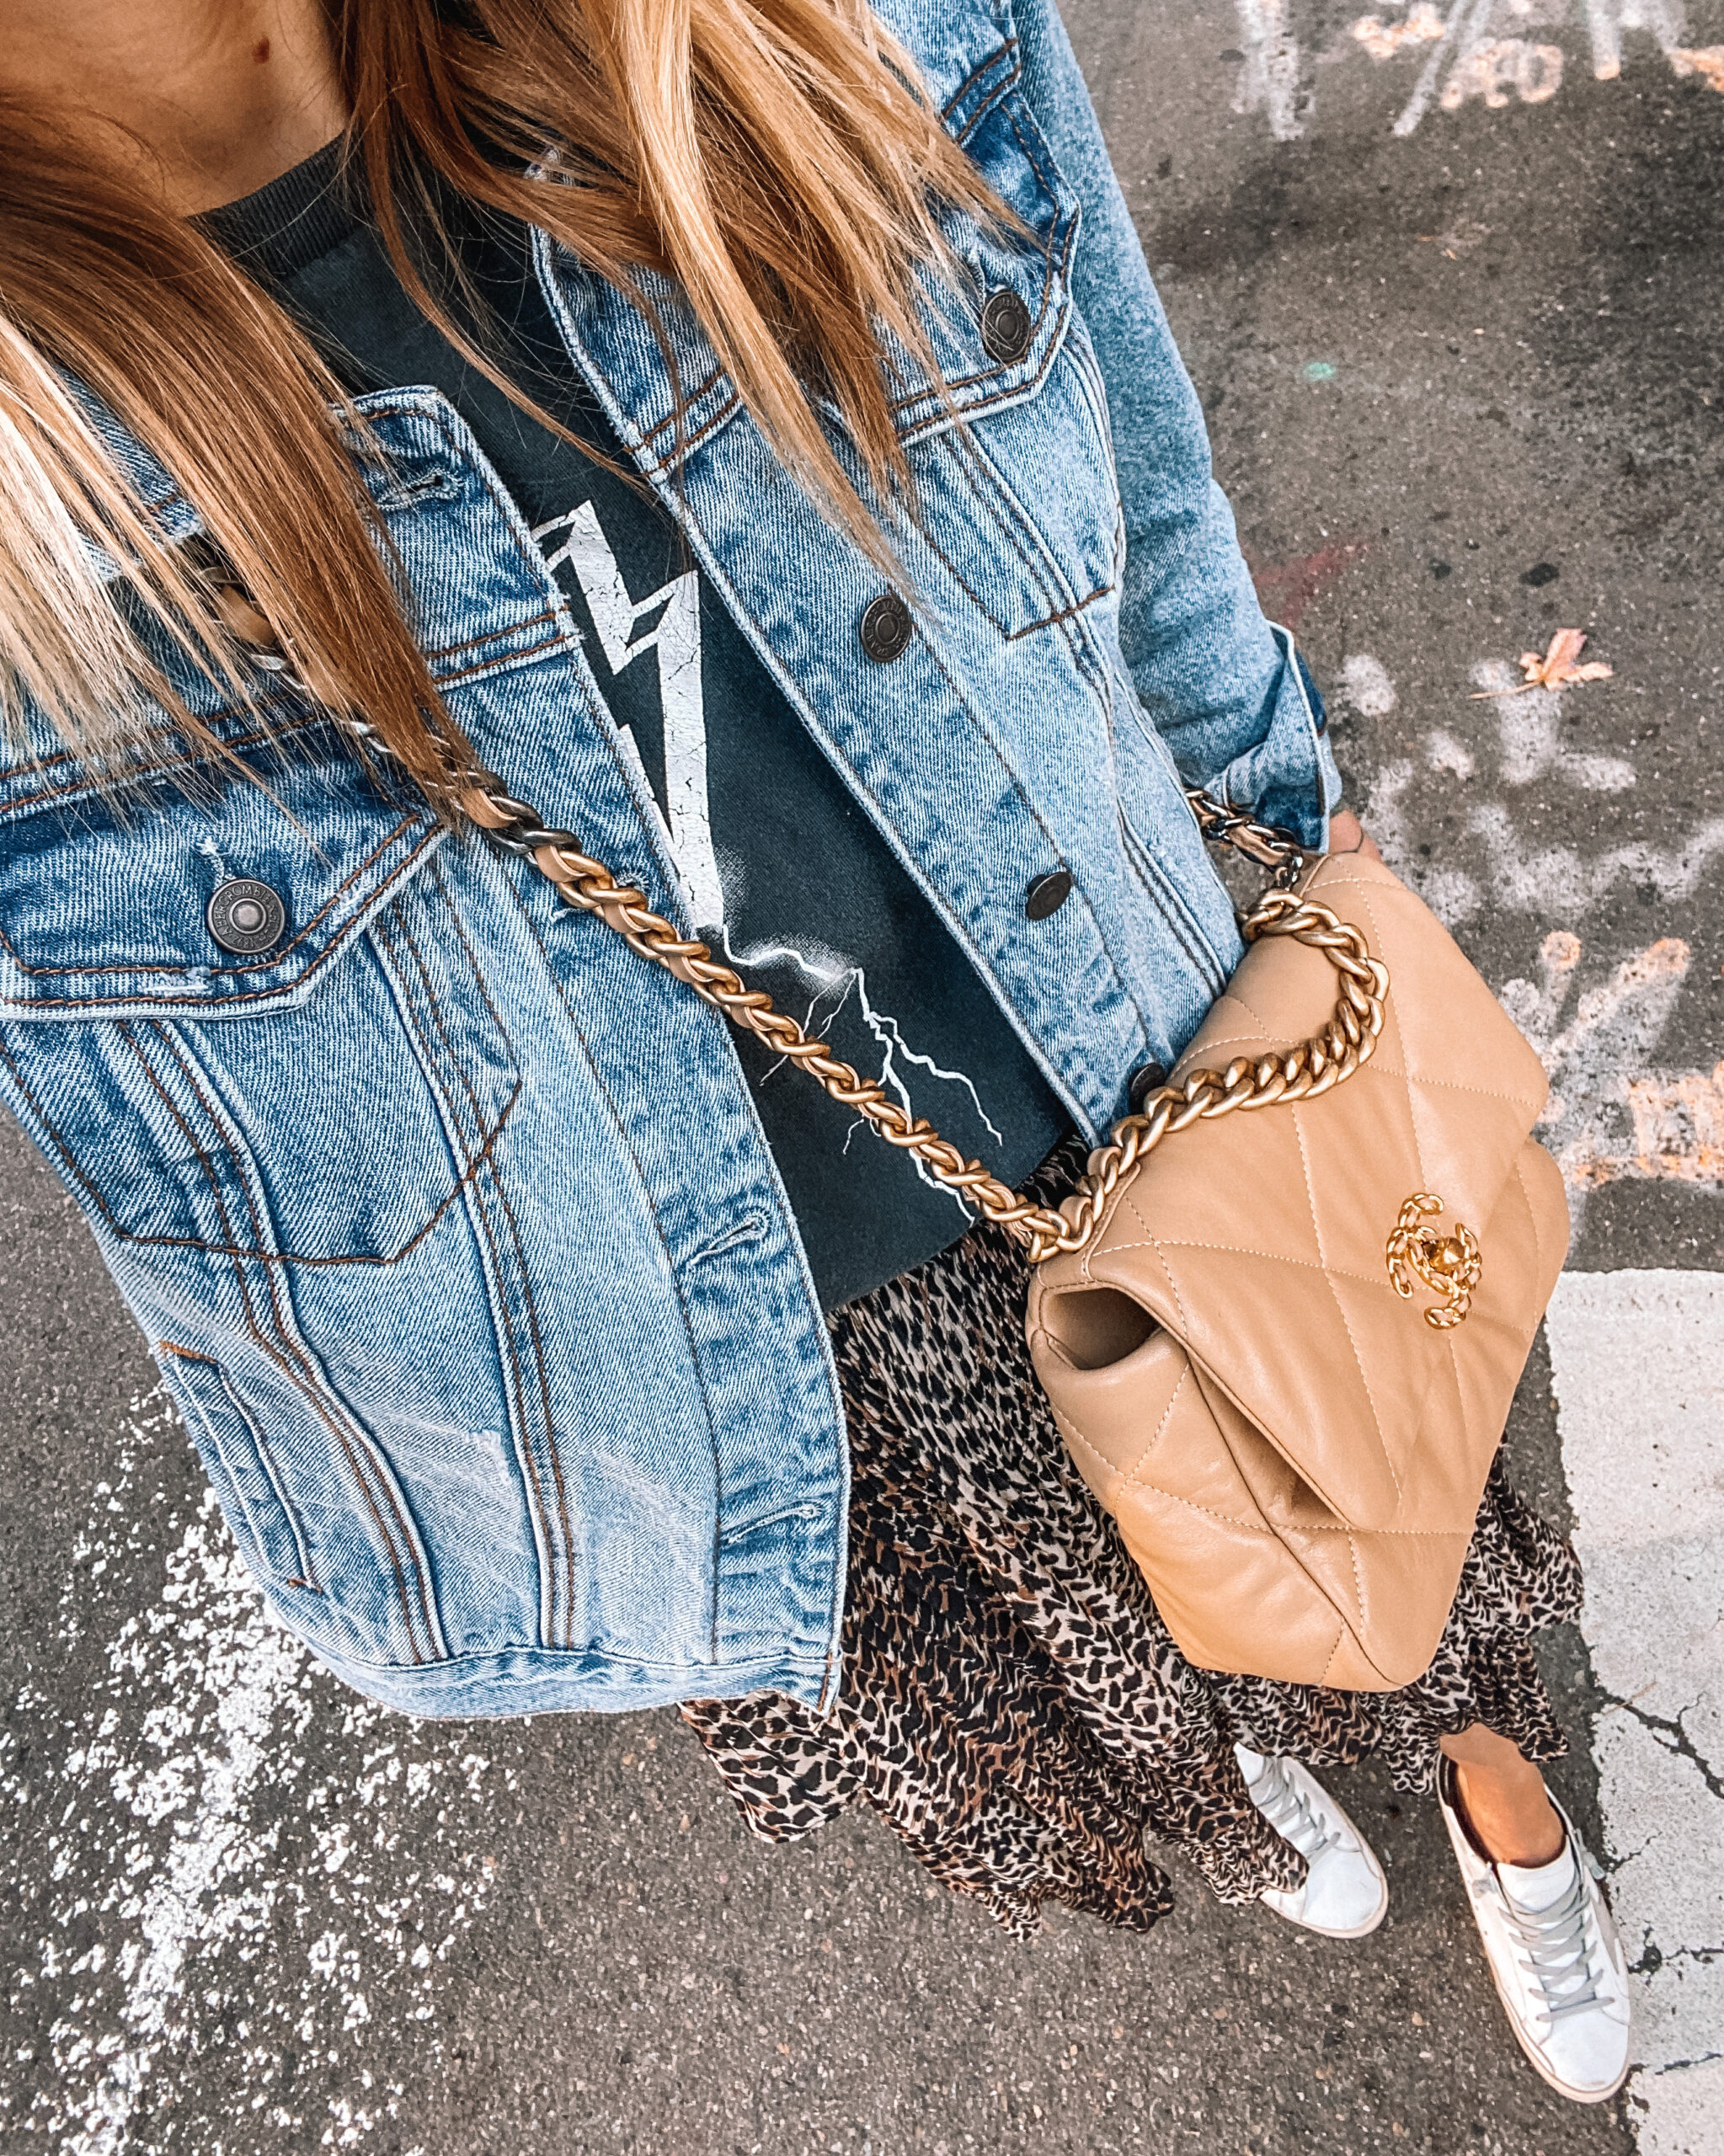 Fashion jackson Wearing denim jacket leopard midi skirt anine bing graphic tshirt golden goose sneakers